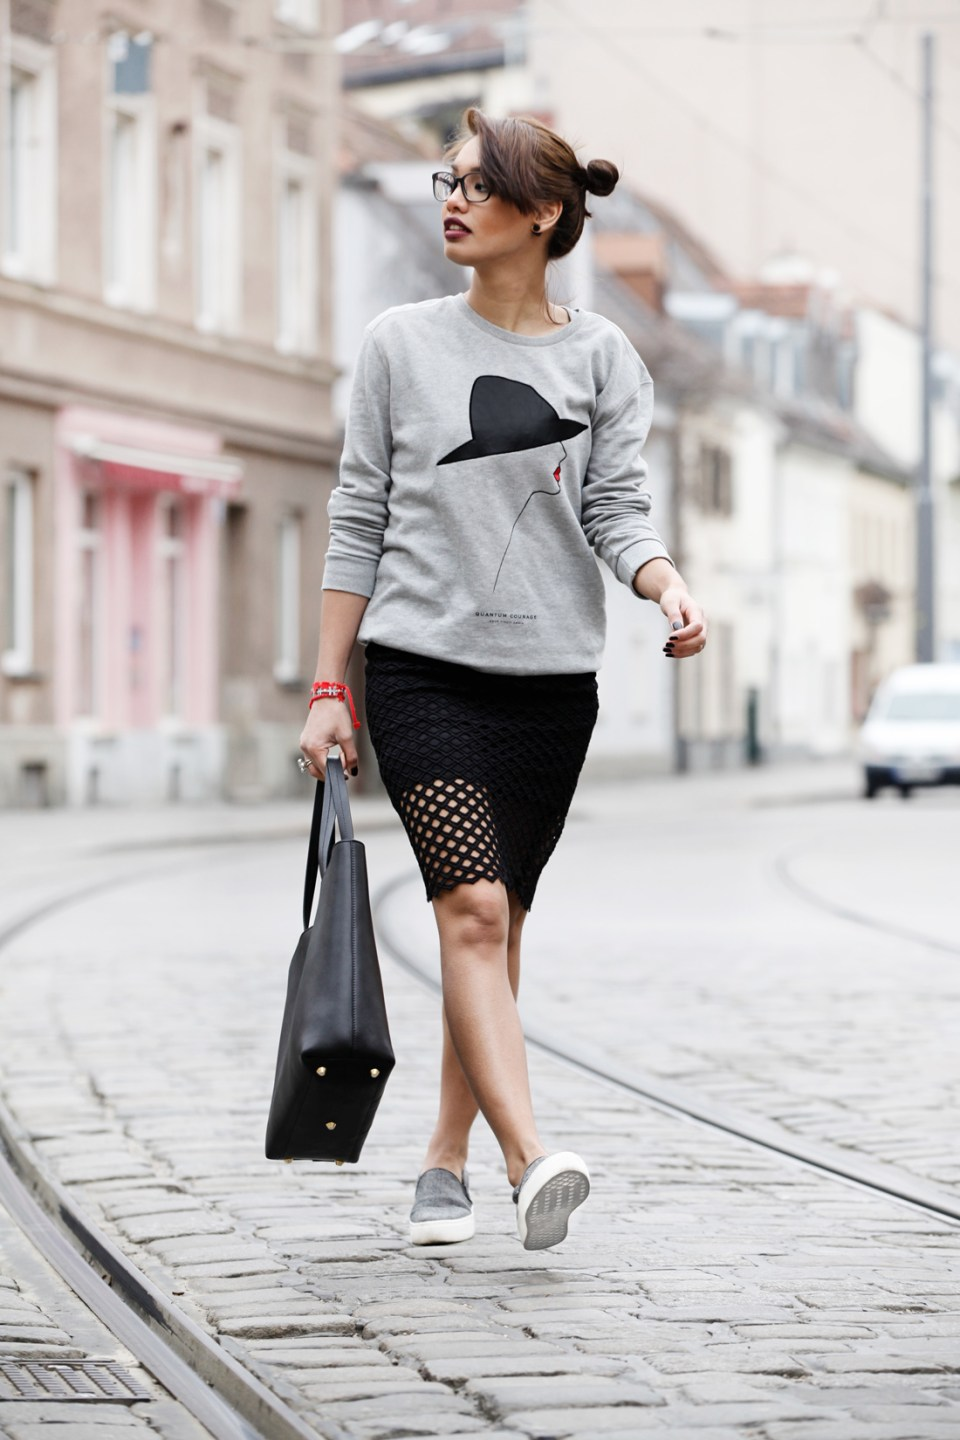 DIANABUENGER-MODEBLOG-FASHIONBLOG-STYLEBLOG-QUANTUMCOURAGE-SPONSORED-ZARA-OUTFITPOST-LOOK-SKIRT-CUTOUT-STREETSTYLE-BLOGGER-MUNICH-MUENCHEN-FASHIONBLOGGER-1